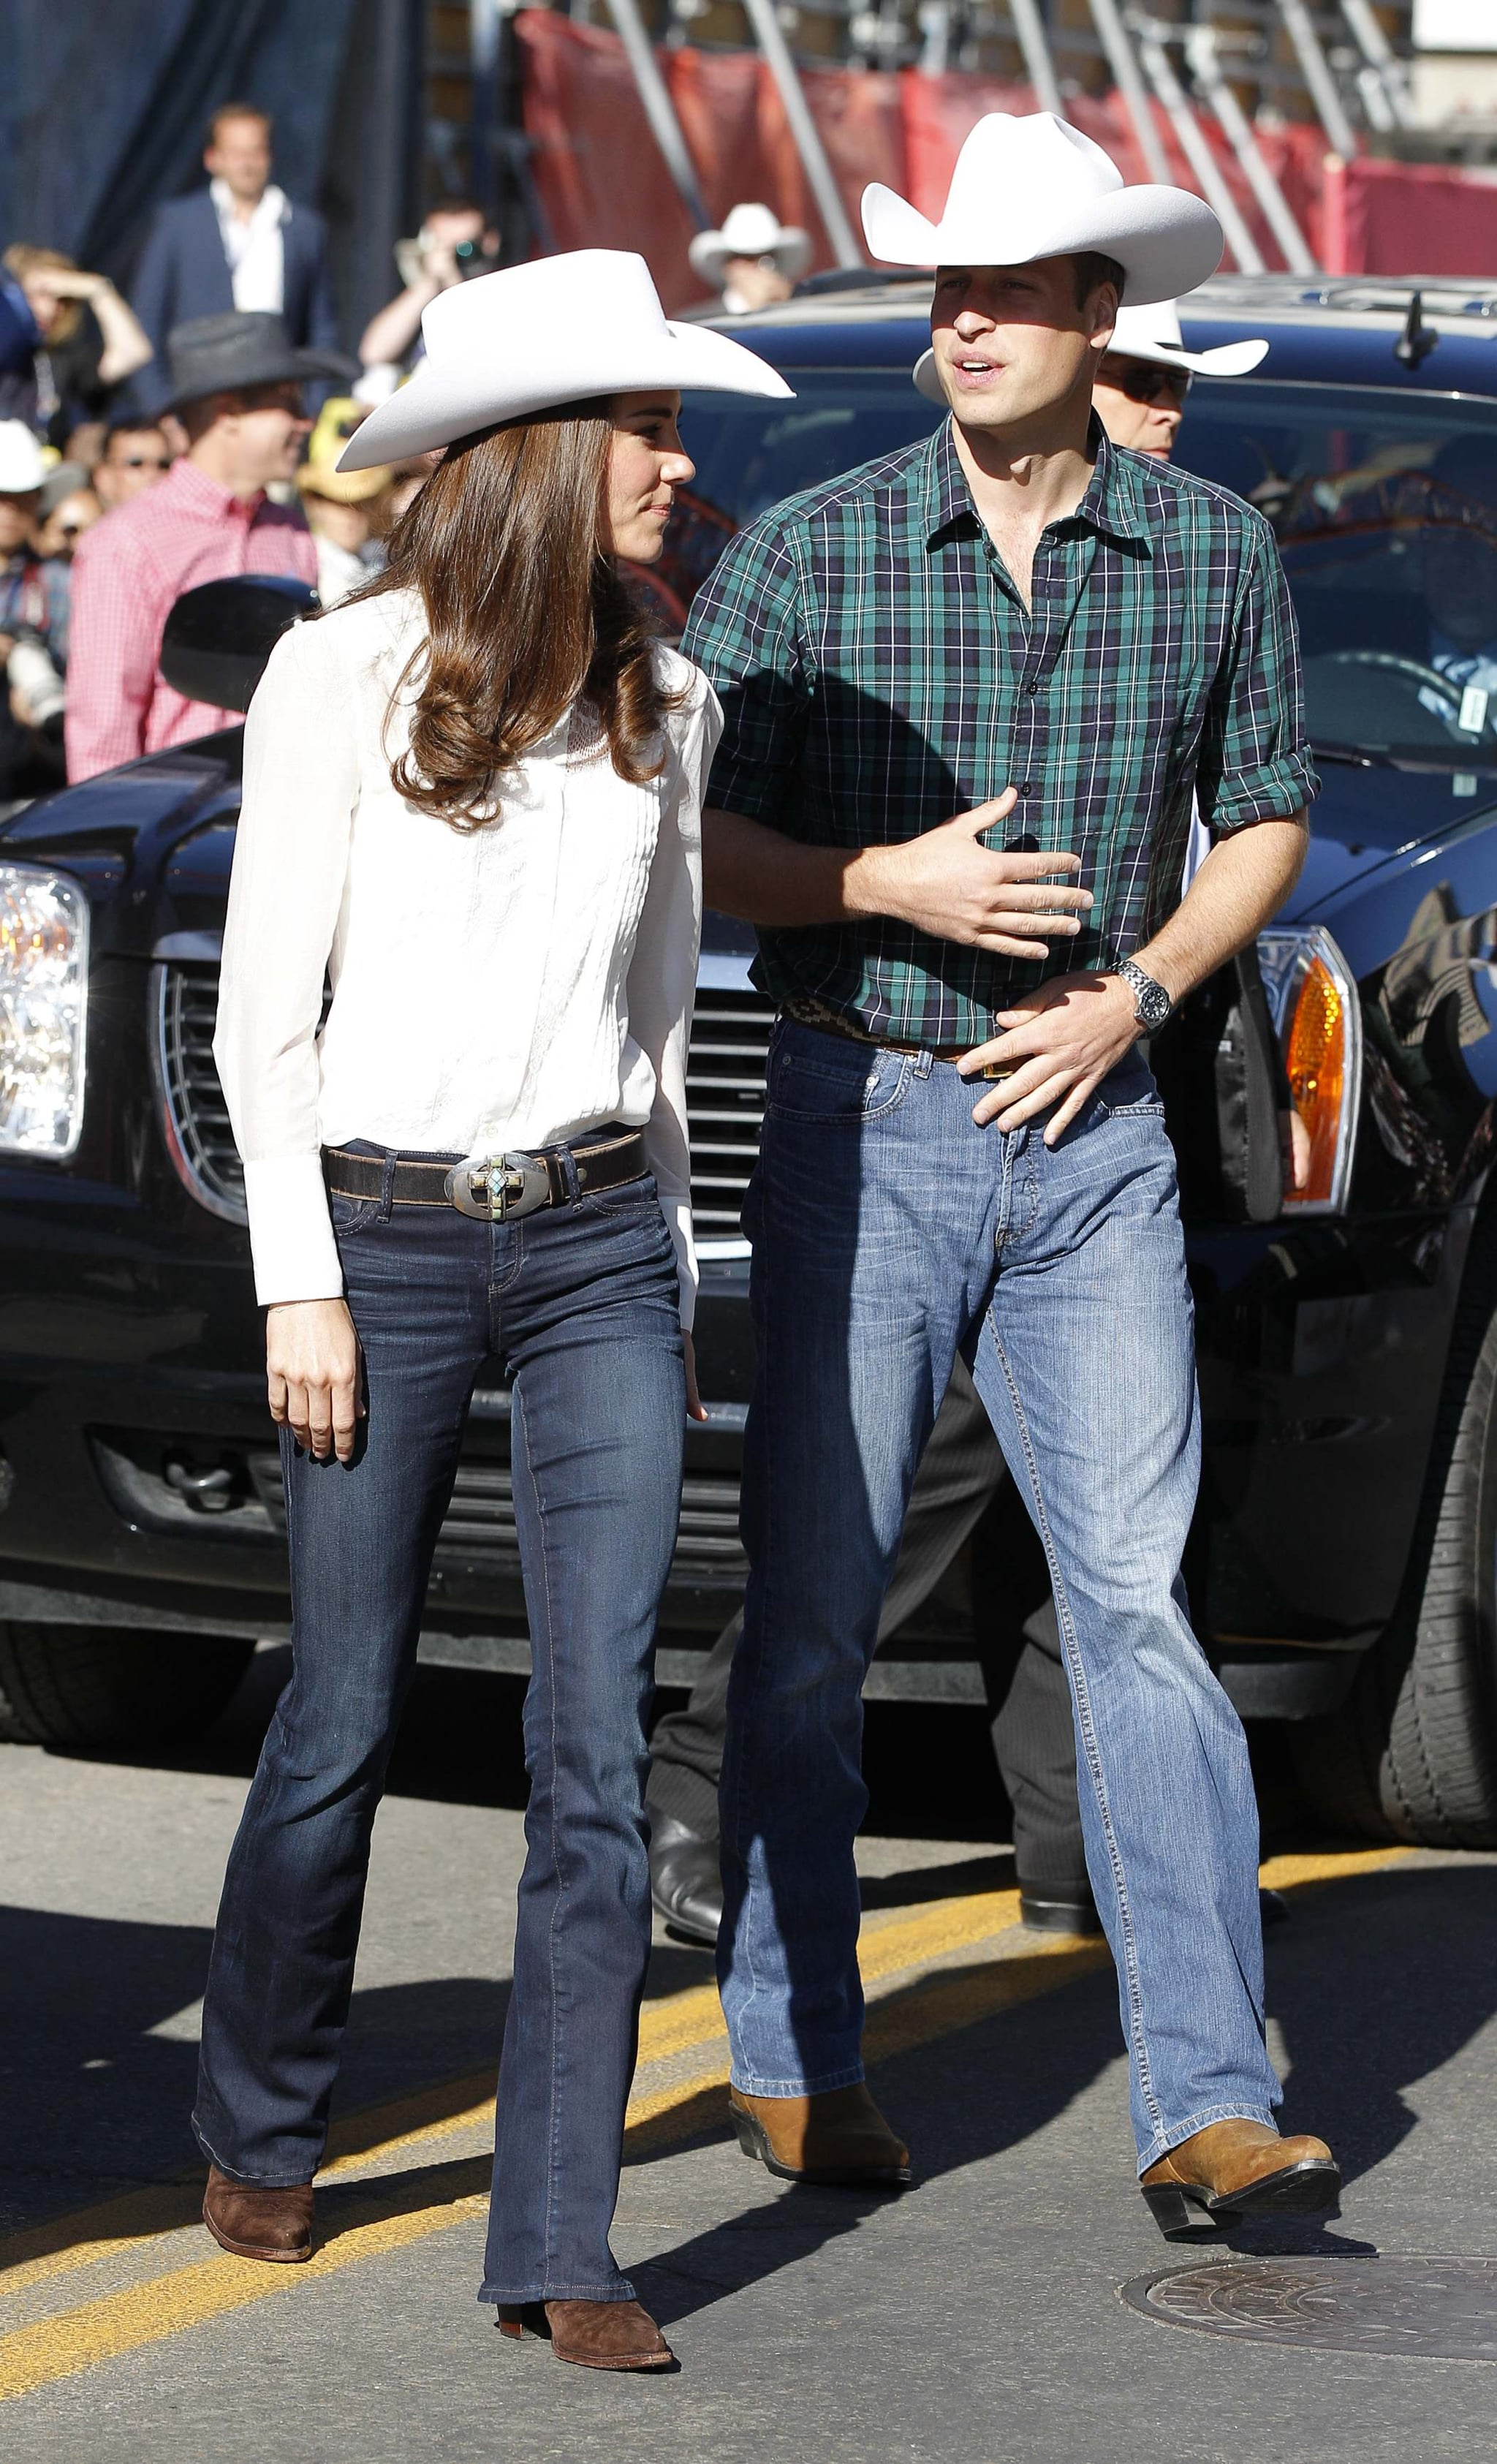 The Royal Couple at the Calgary Stampede Parade